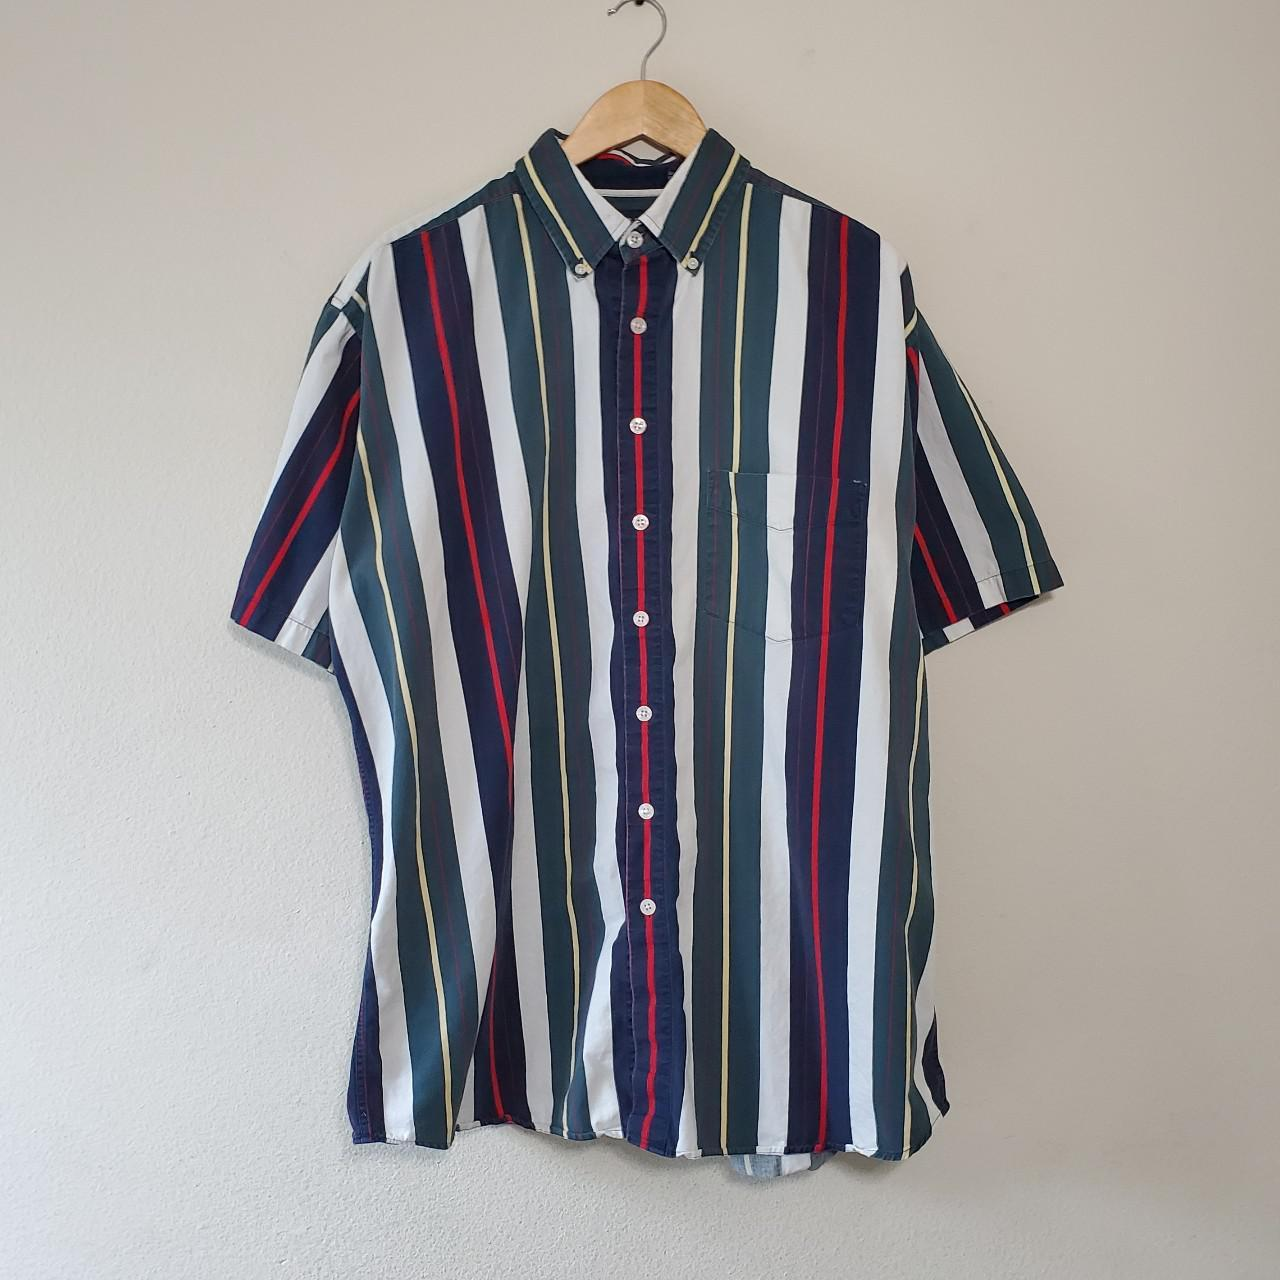 Product Image 1 - Vintage striped button up short